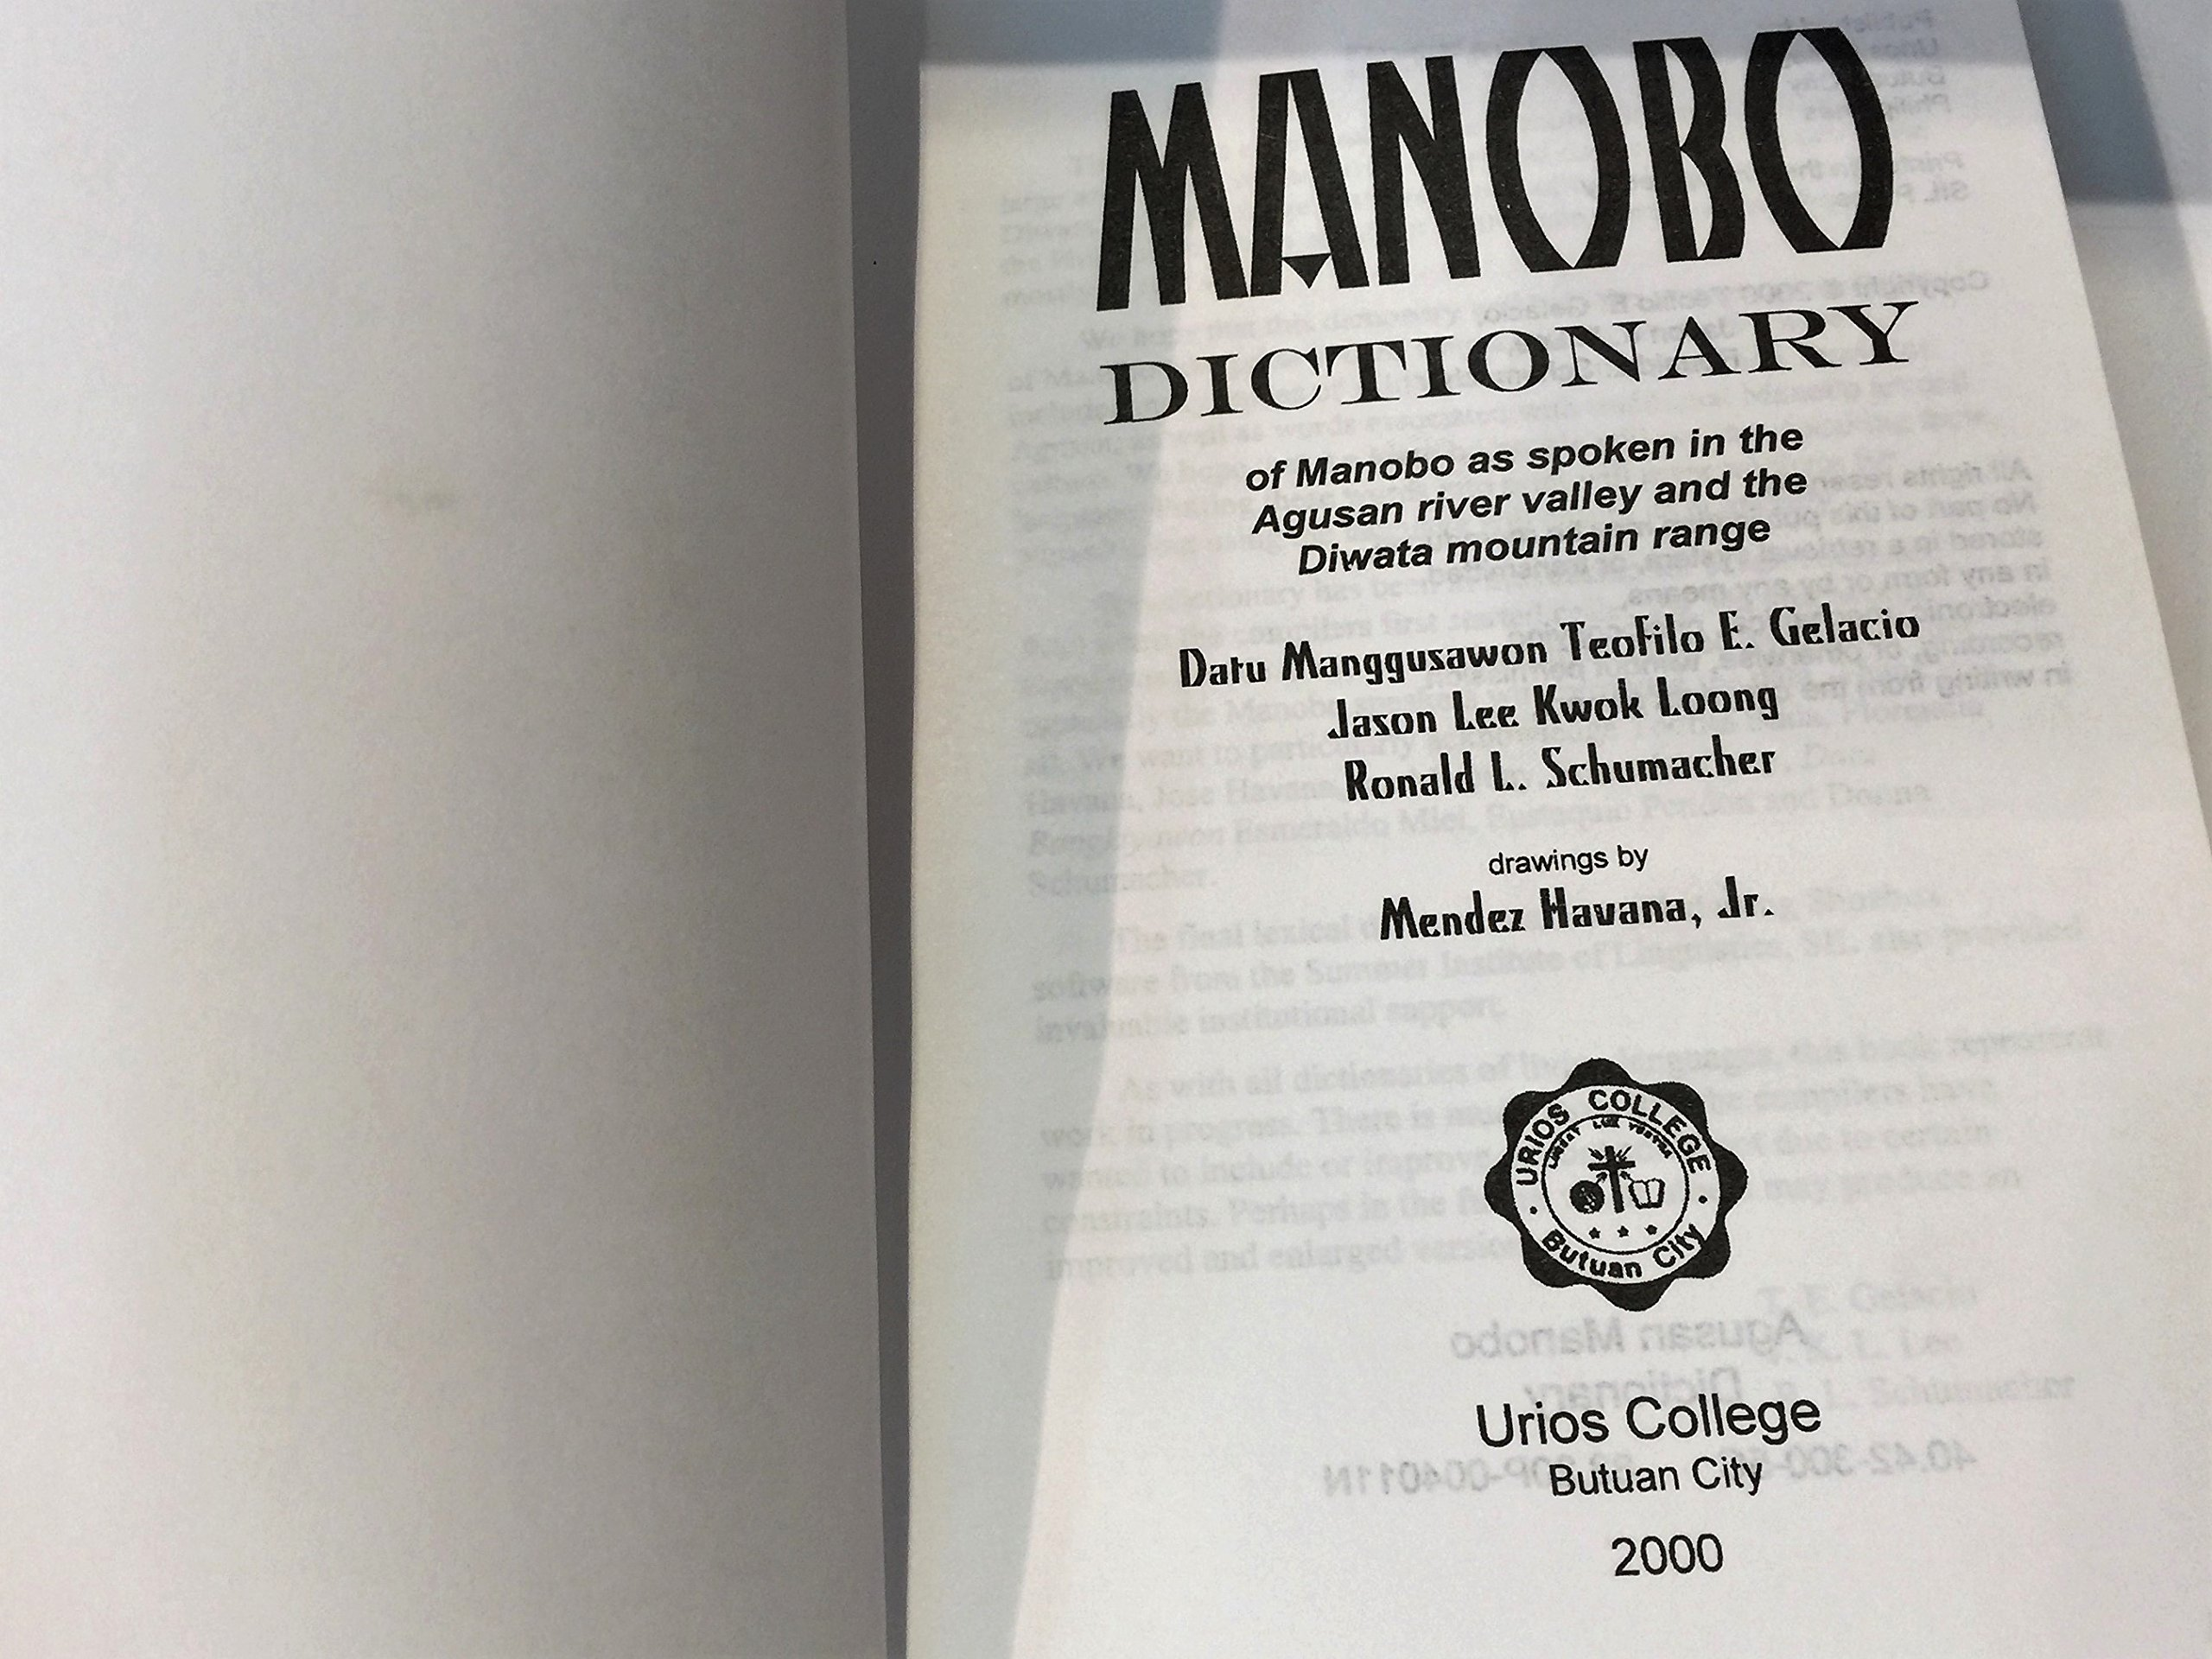 Manobo Dictionary of Manobo as Spoken in the Agusan River Valley and